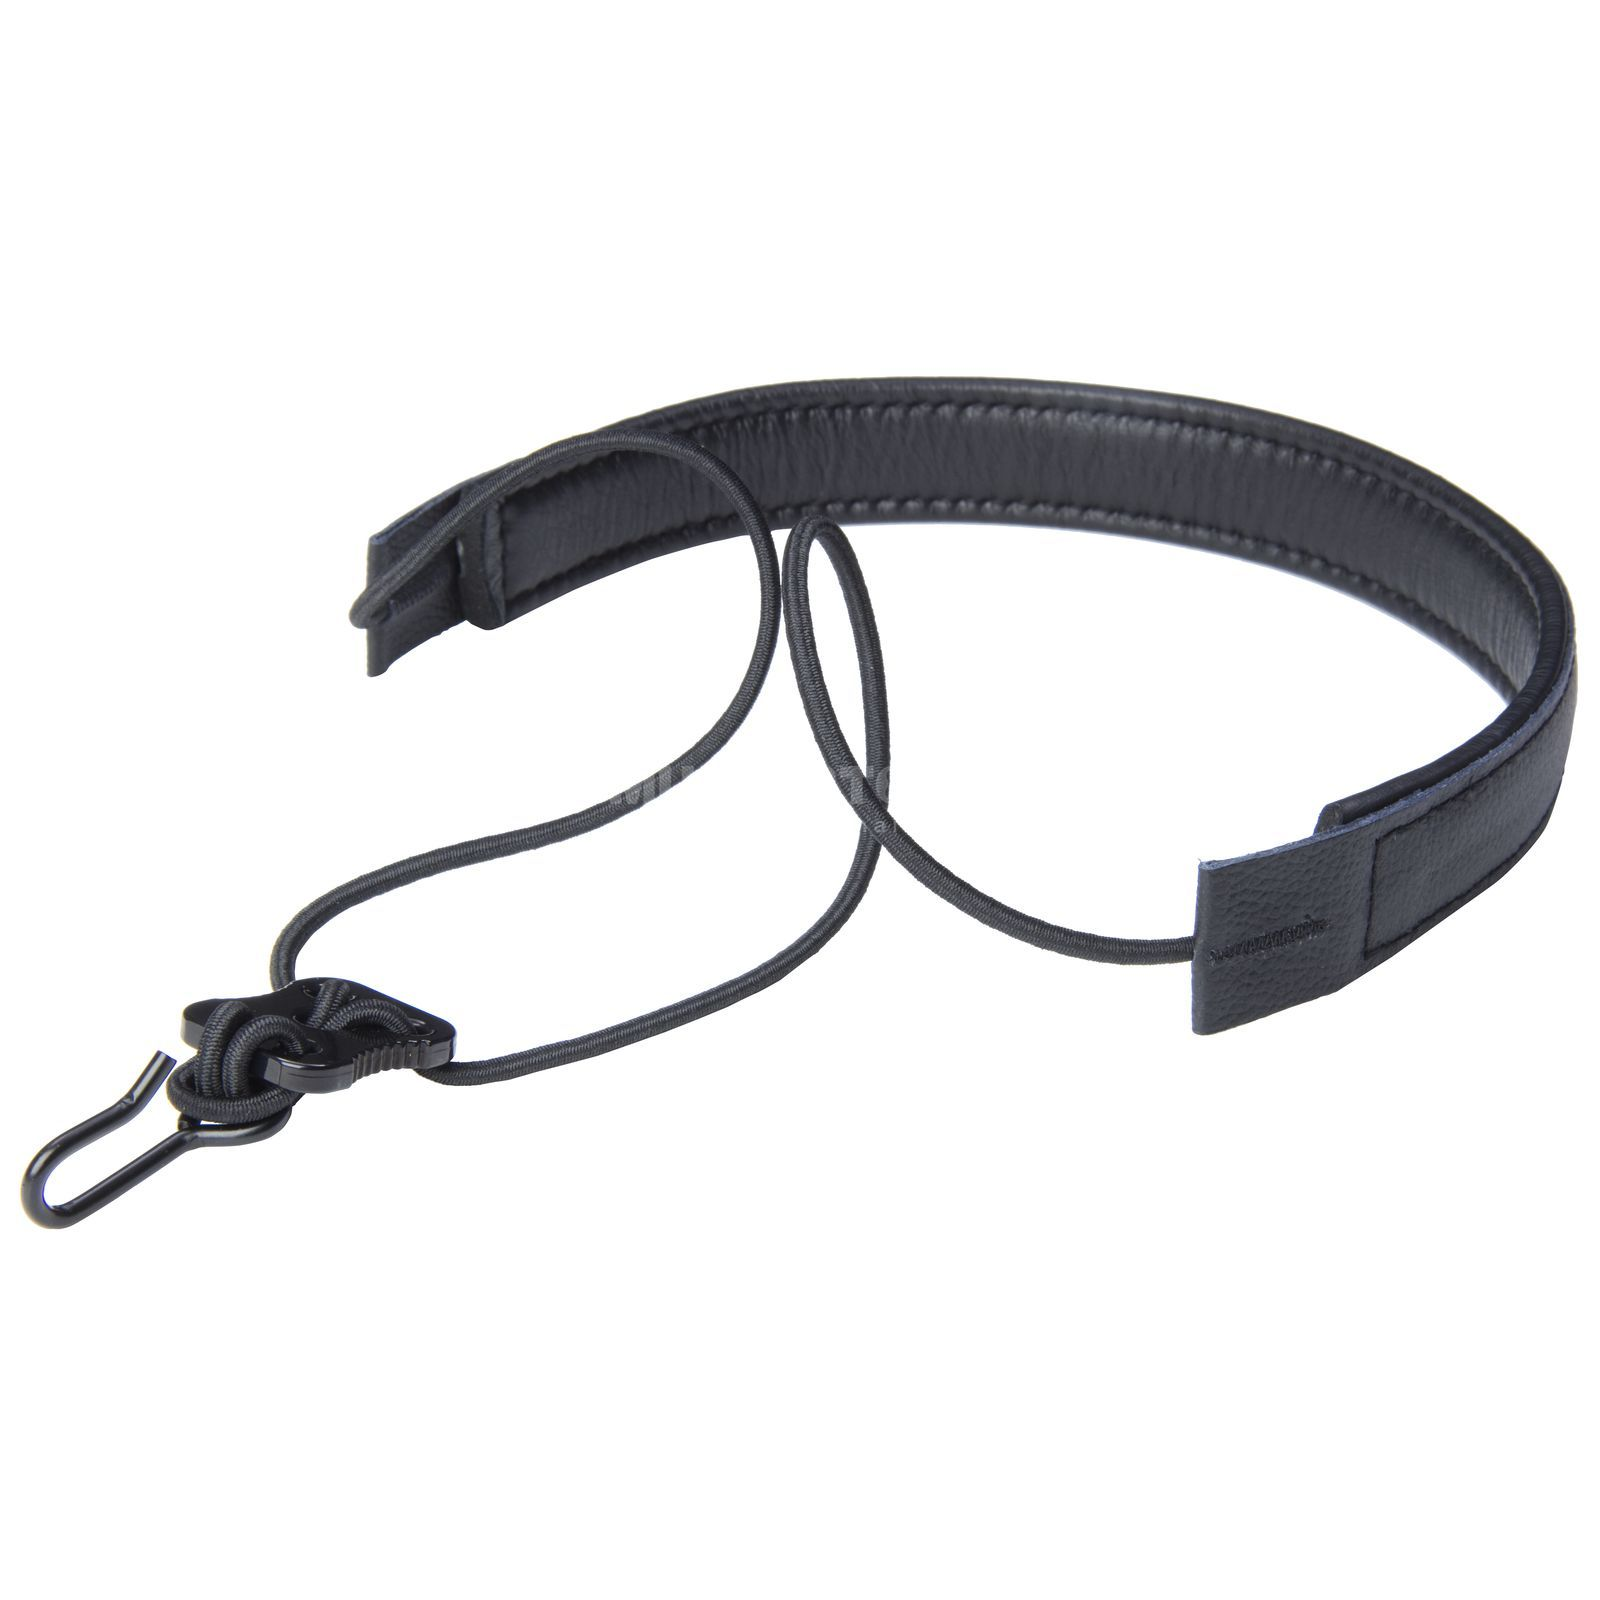 Monzani Elastic Strap f. Clarinet Cow Leather, Black Immagine prodotto